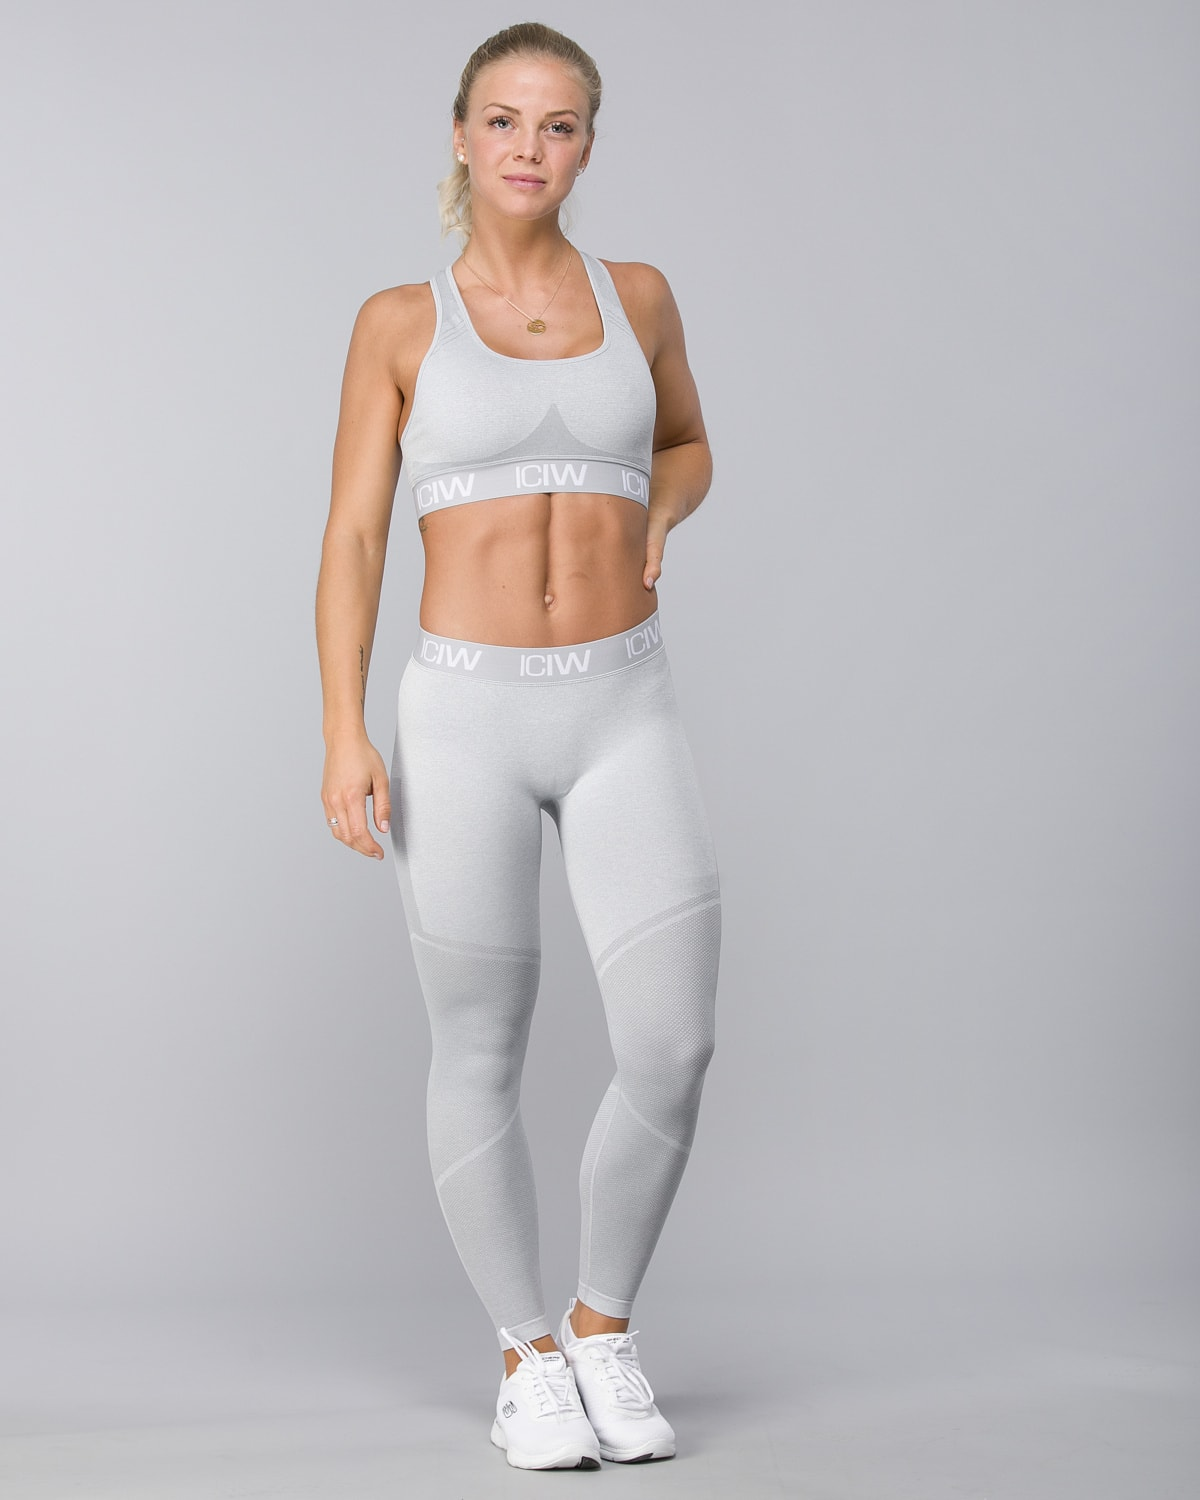 Icaniwill-Seamless Tights–Light Grey5